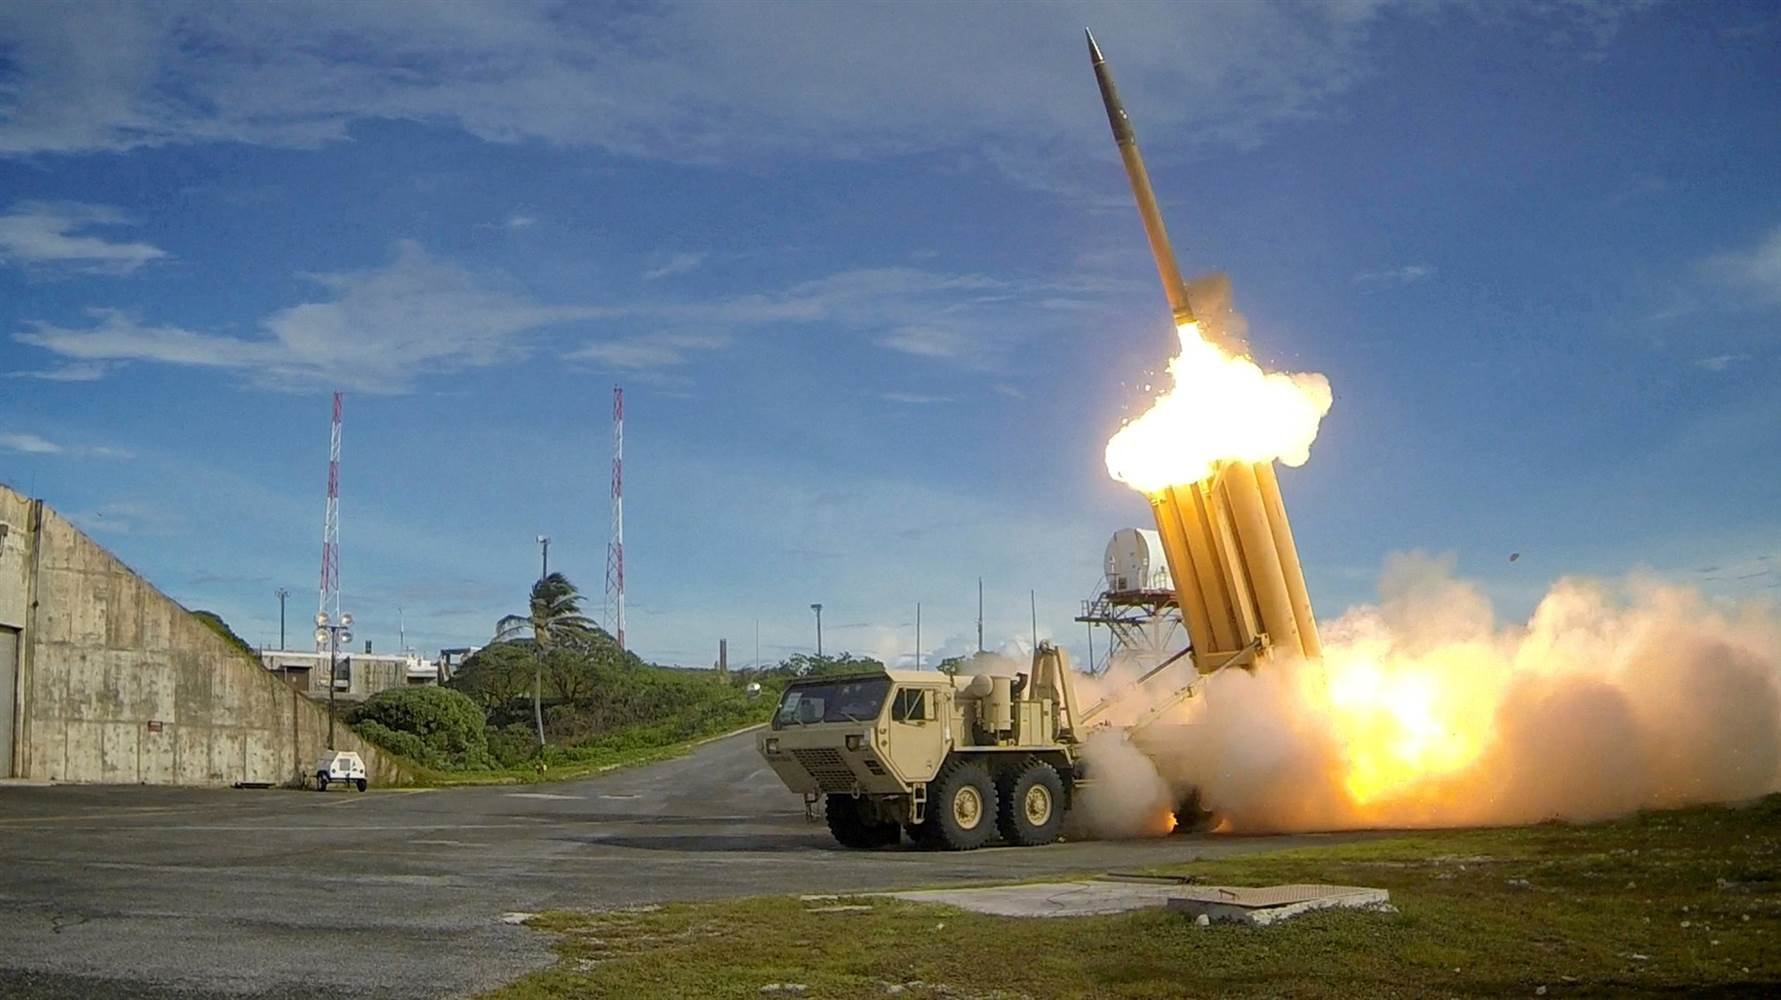 U.S. tests missile-defense system over Pacific Ocean